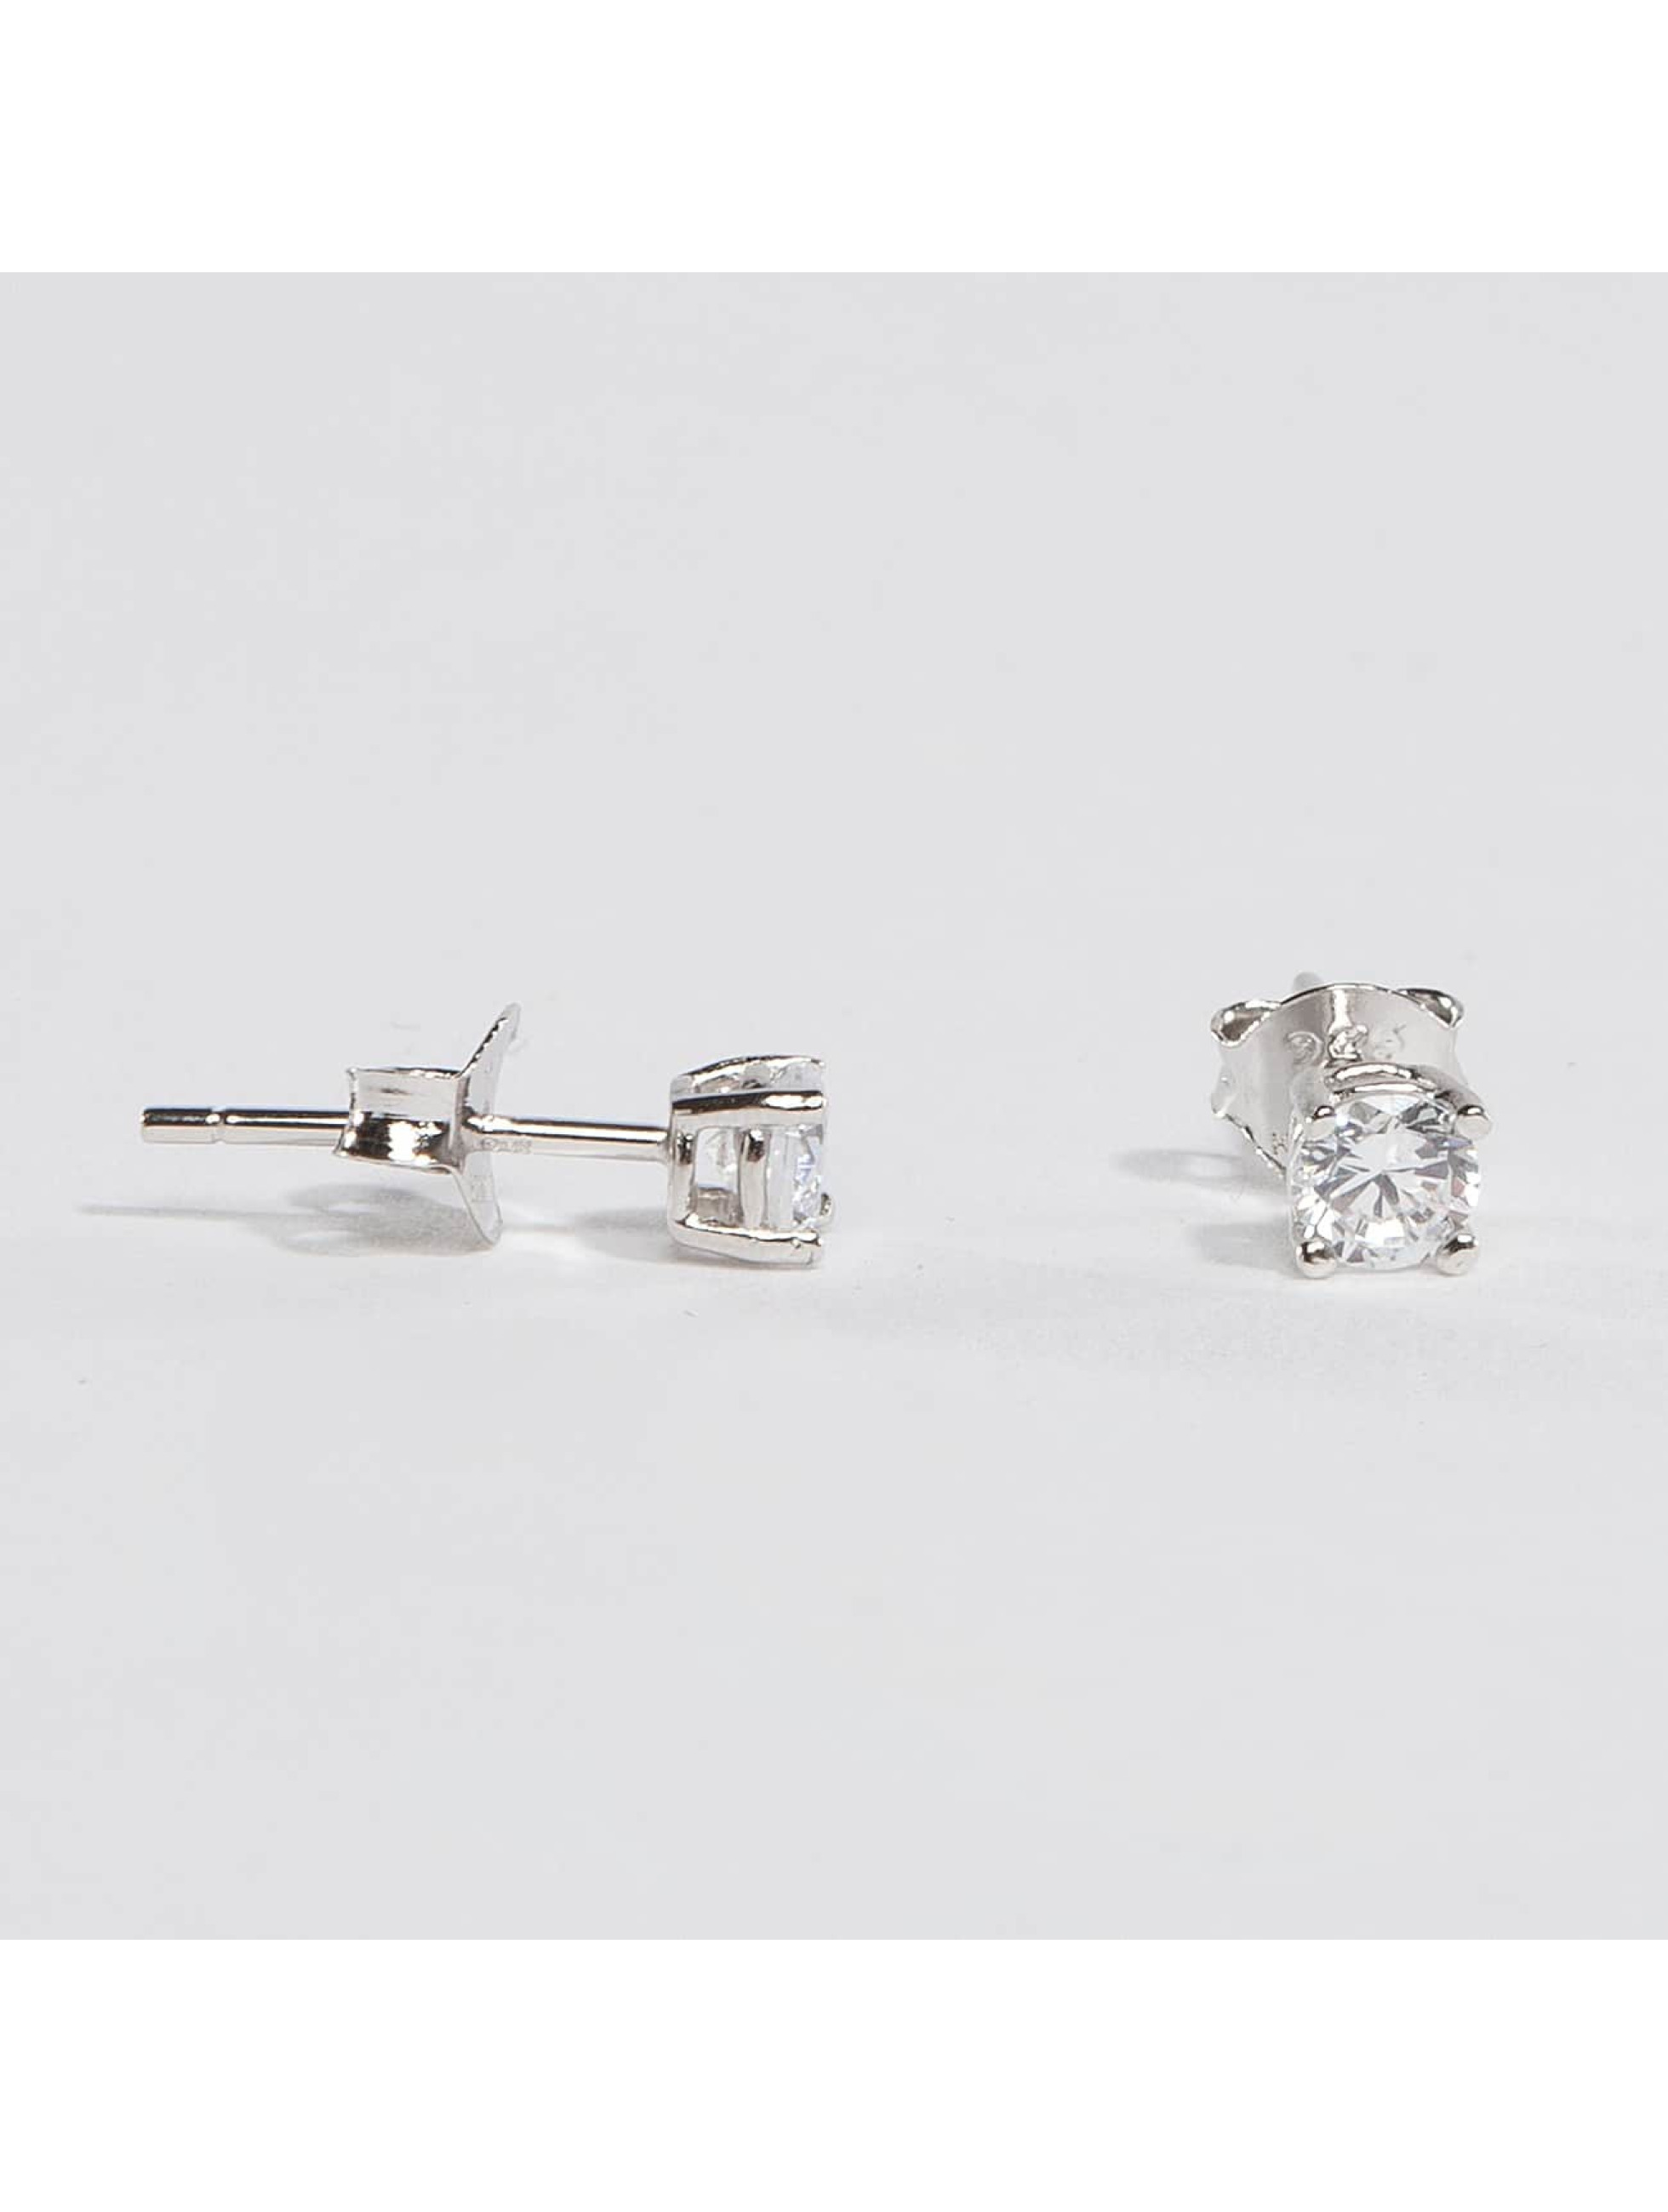 KING ICE Boucles d'oreilles Rhodium_Plated 4mm 925 Sterling_Silver CZ argent